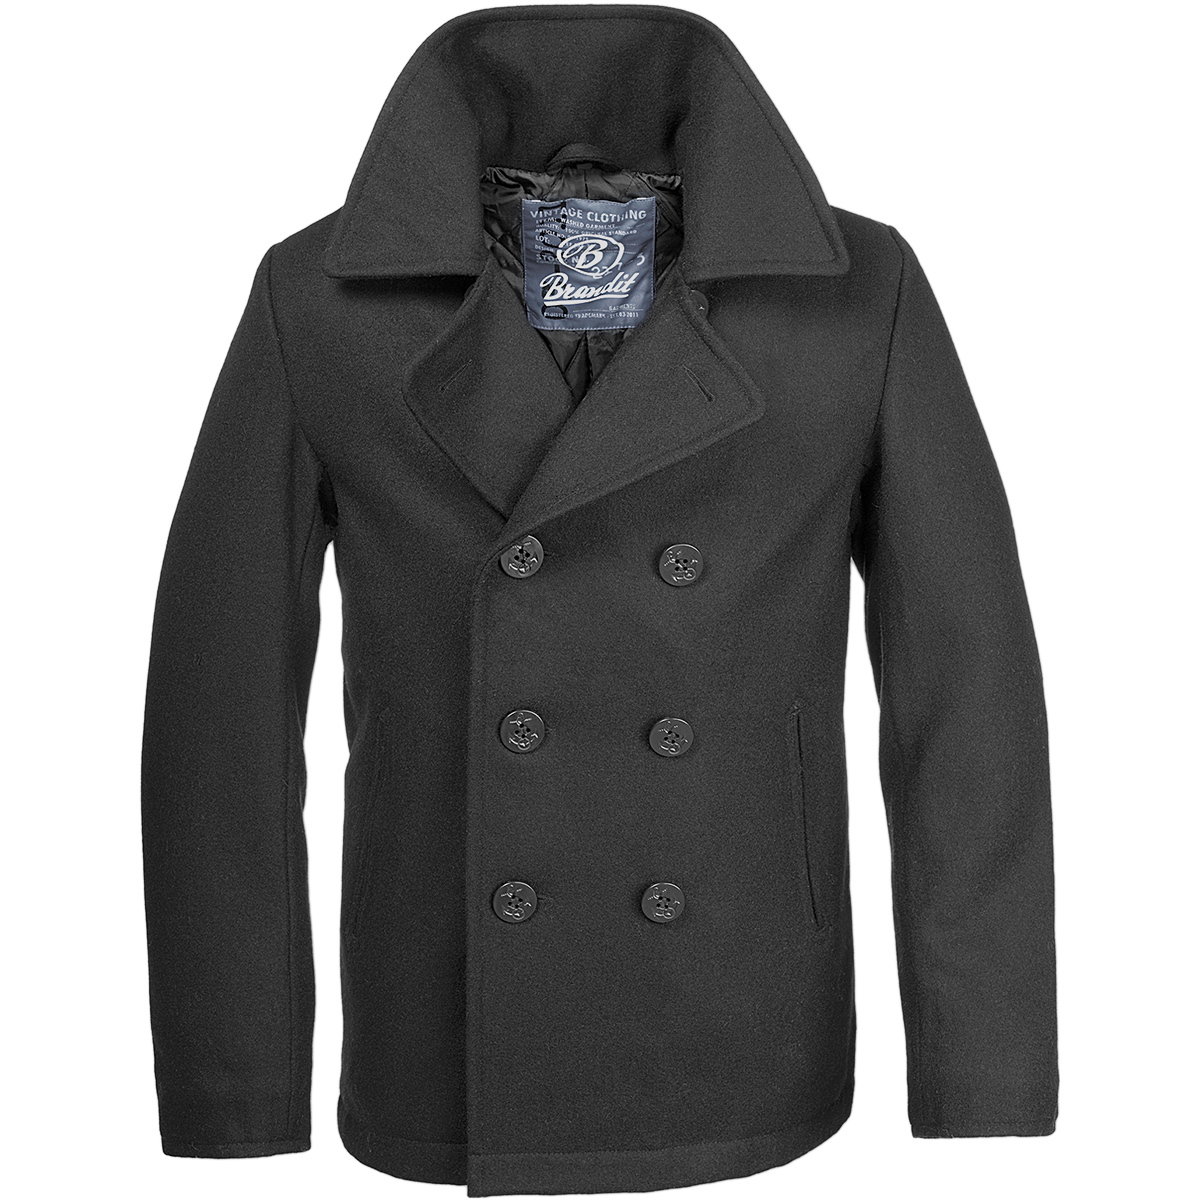 Army Navy Pea Coat